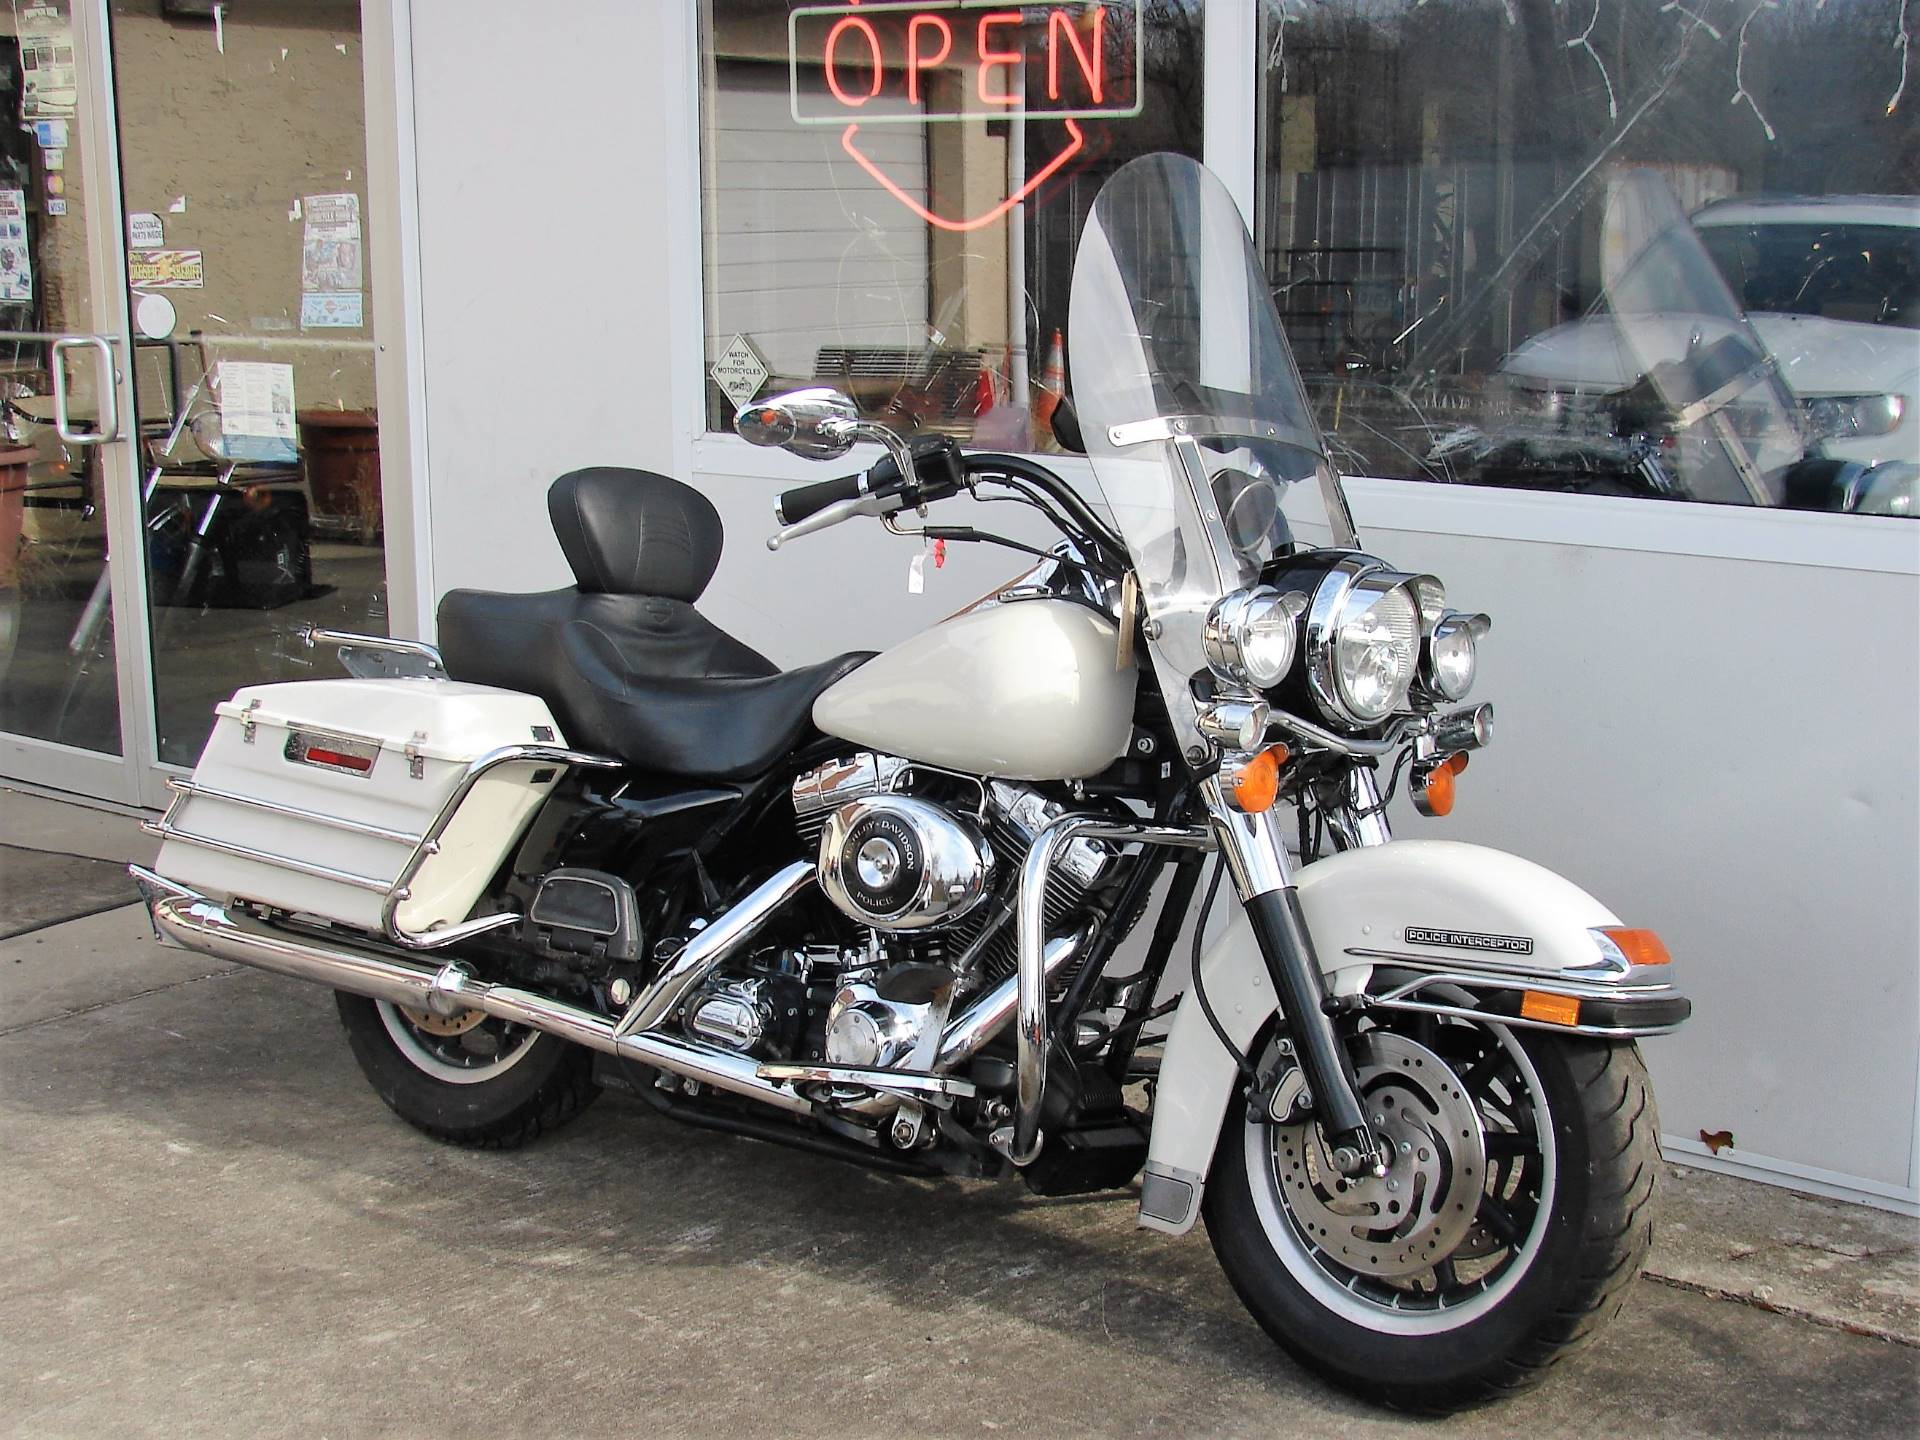 2001 Harley-Davidson FLHTPI Electra Glide (Police Special) - WHITE in Williamstown, New Jersey - Photo 3